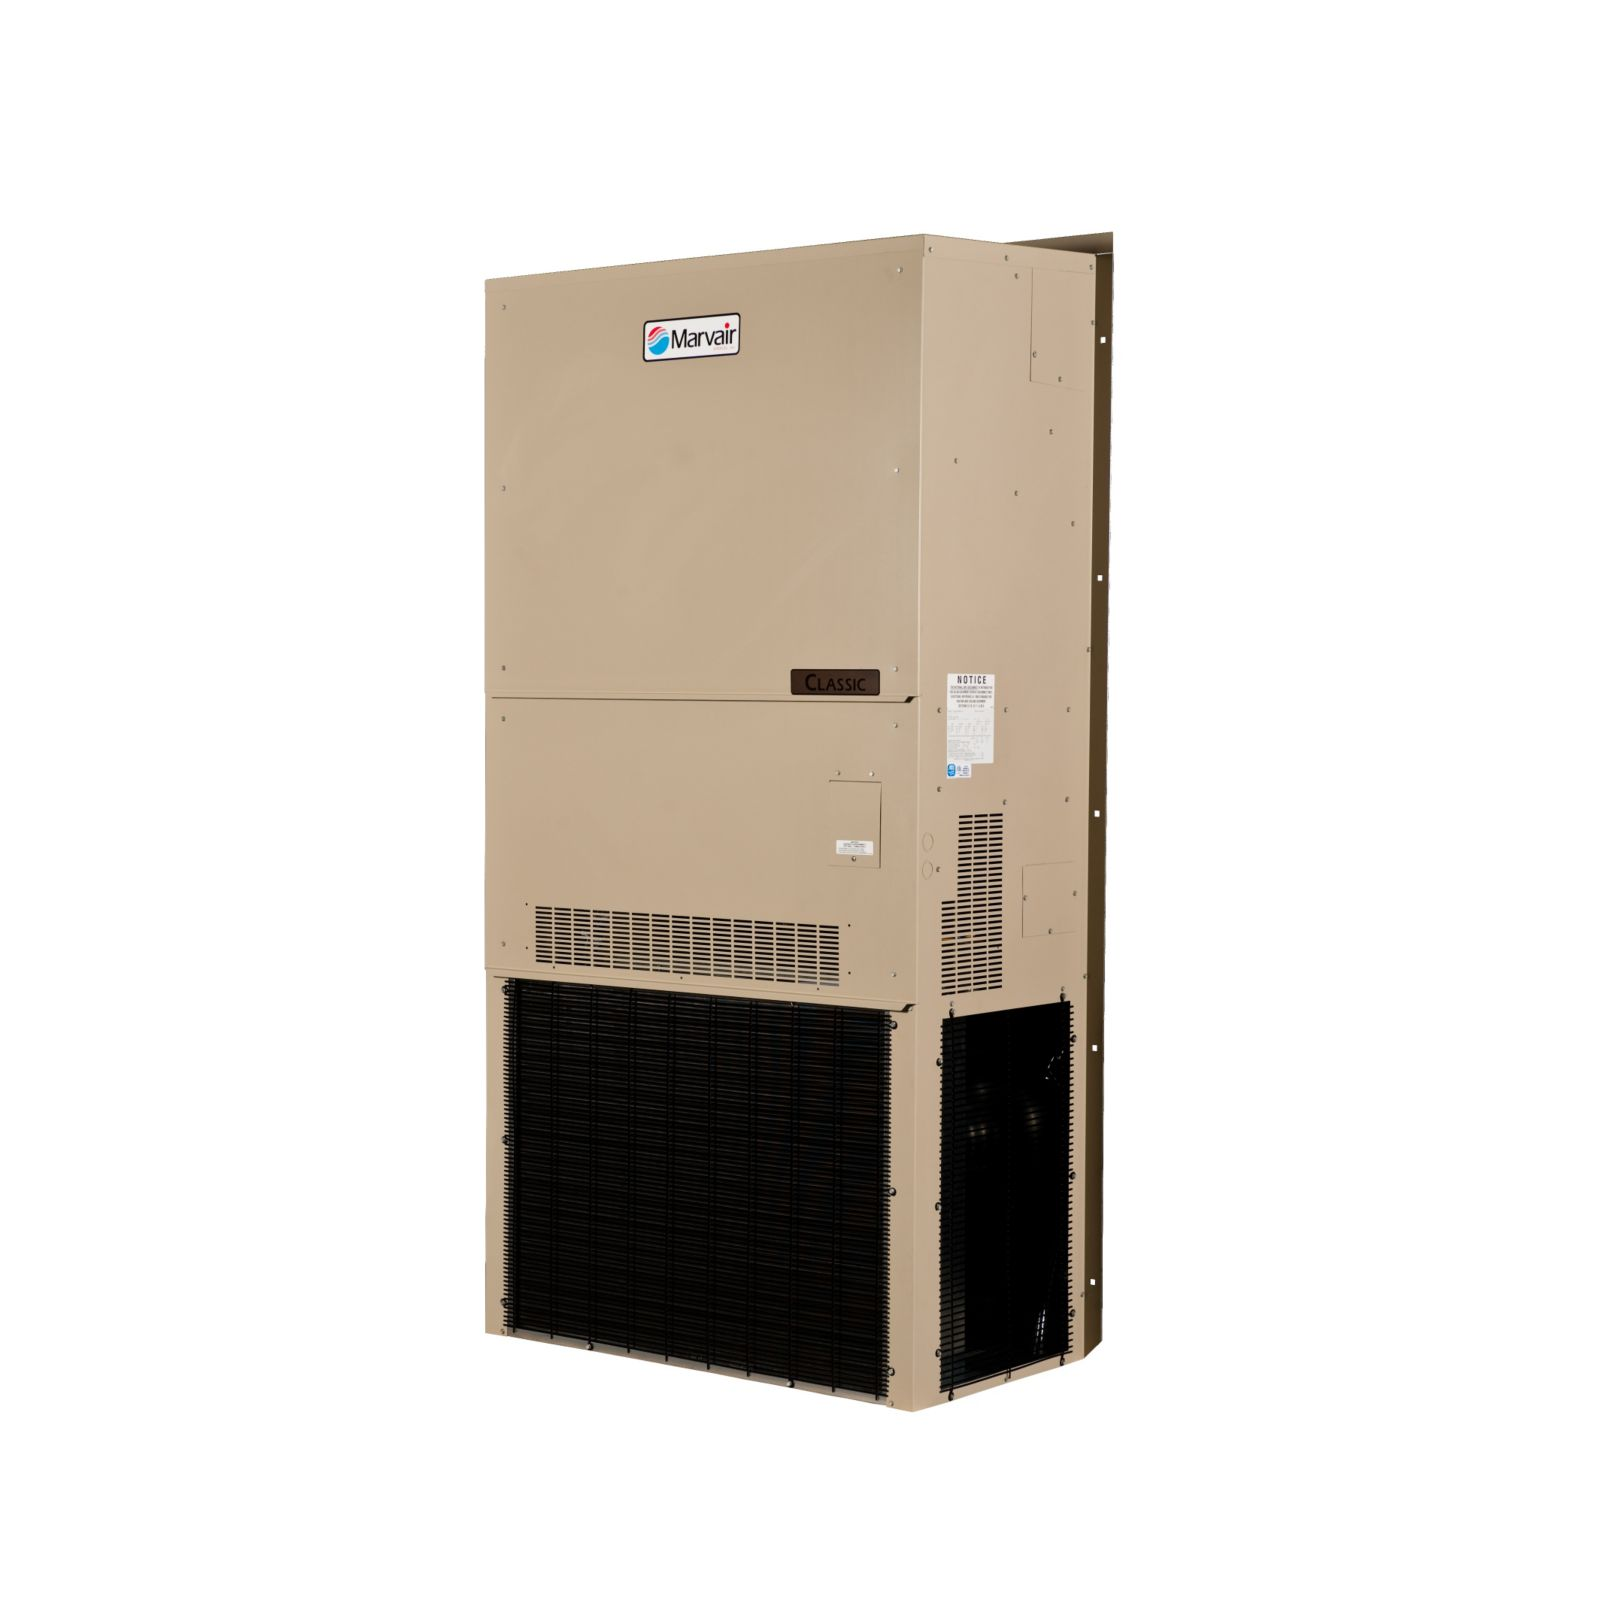 Marvair AVPA24ACA000M5-A2-100 - Wall Mount AC, ModPac, 2 Ton, 208-230/1, No Heat, Manual Damper, R410A